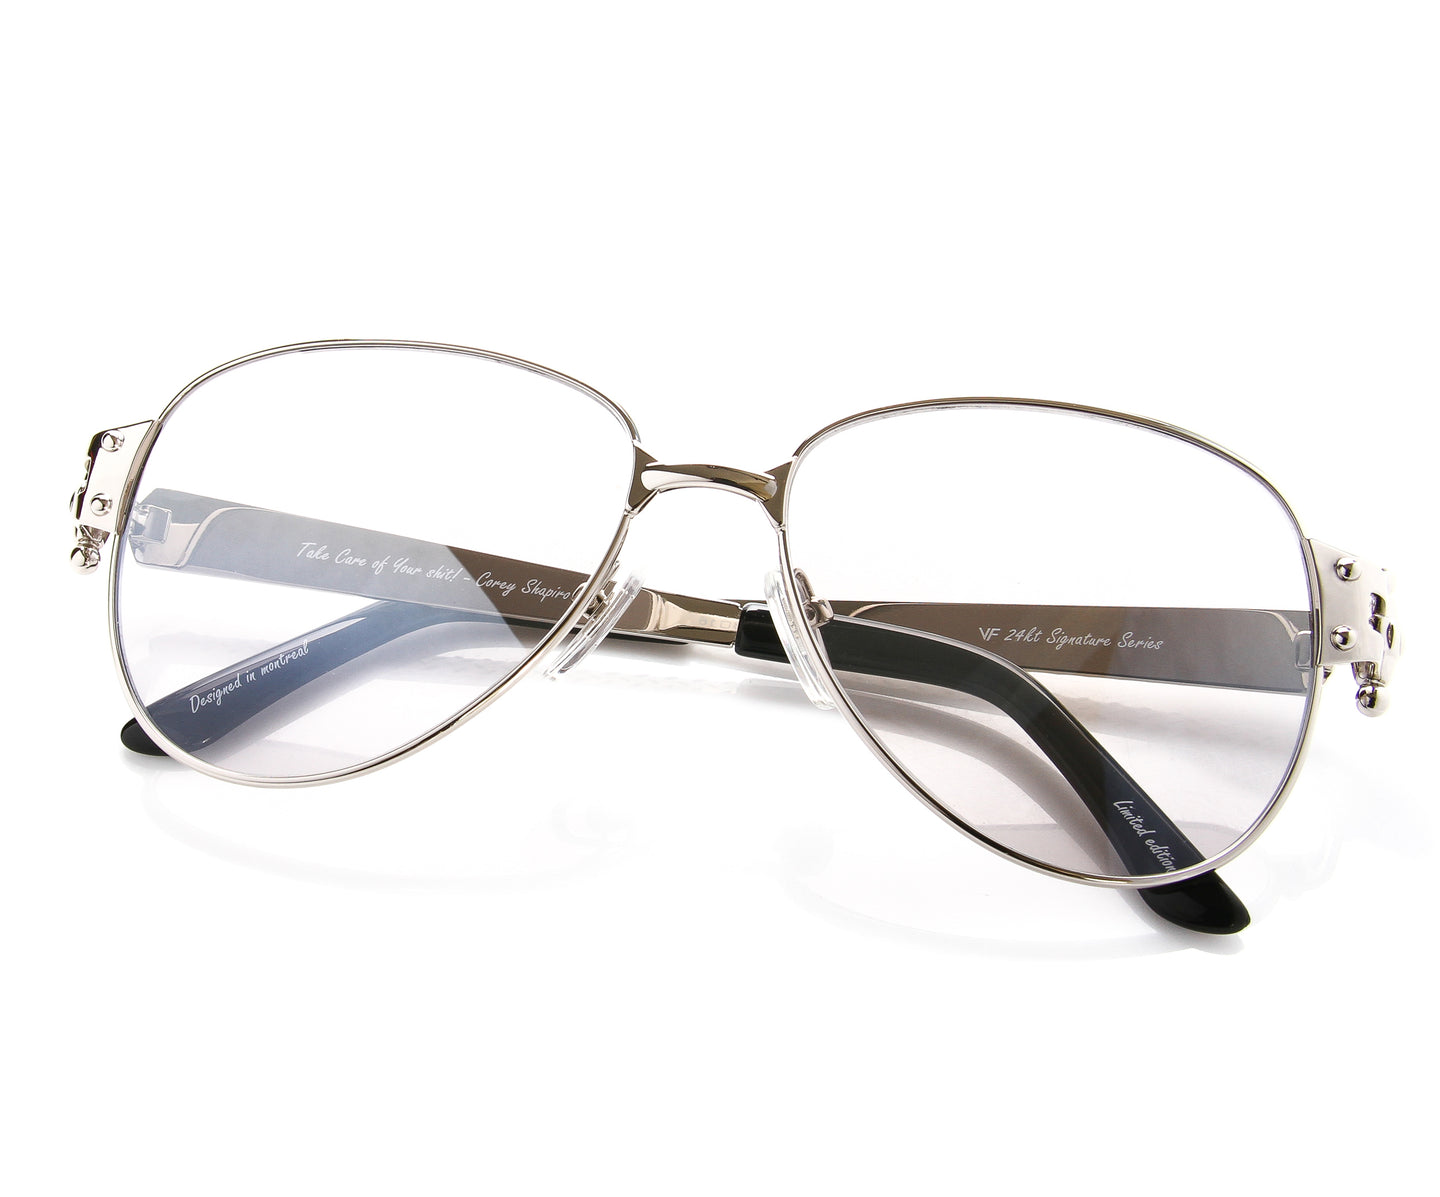 VF 2001 24KT White Gold Masterpiece (Strom Gray), VF Masterpiece , glasses frames, eyeglasses online, eyeglass frames, mens glasses, womens glasses, buy glasses online, designer eyeglasses, vintage sunglasses, retro sunglasses, vintage glasses, sunglass, eyeglass, glasses, lens, vintage frames company, vf